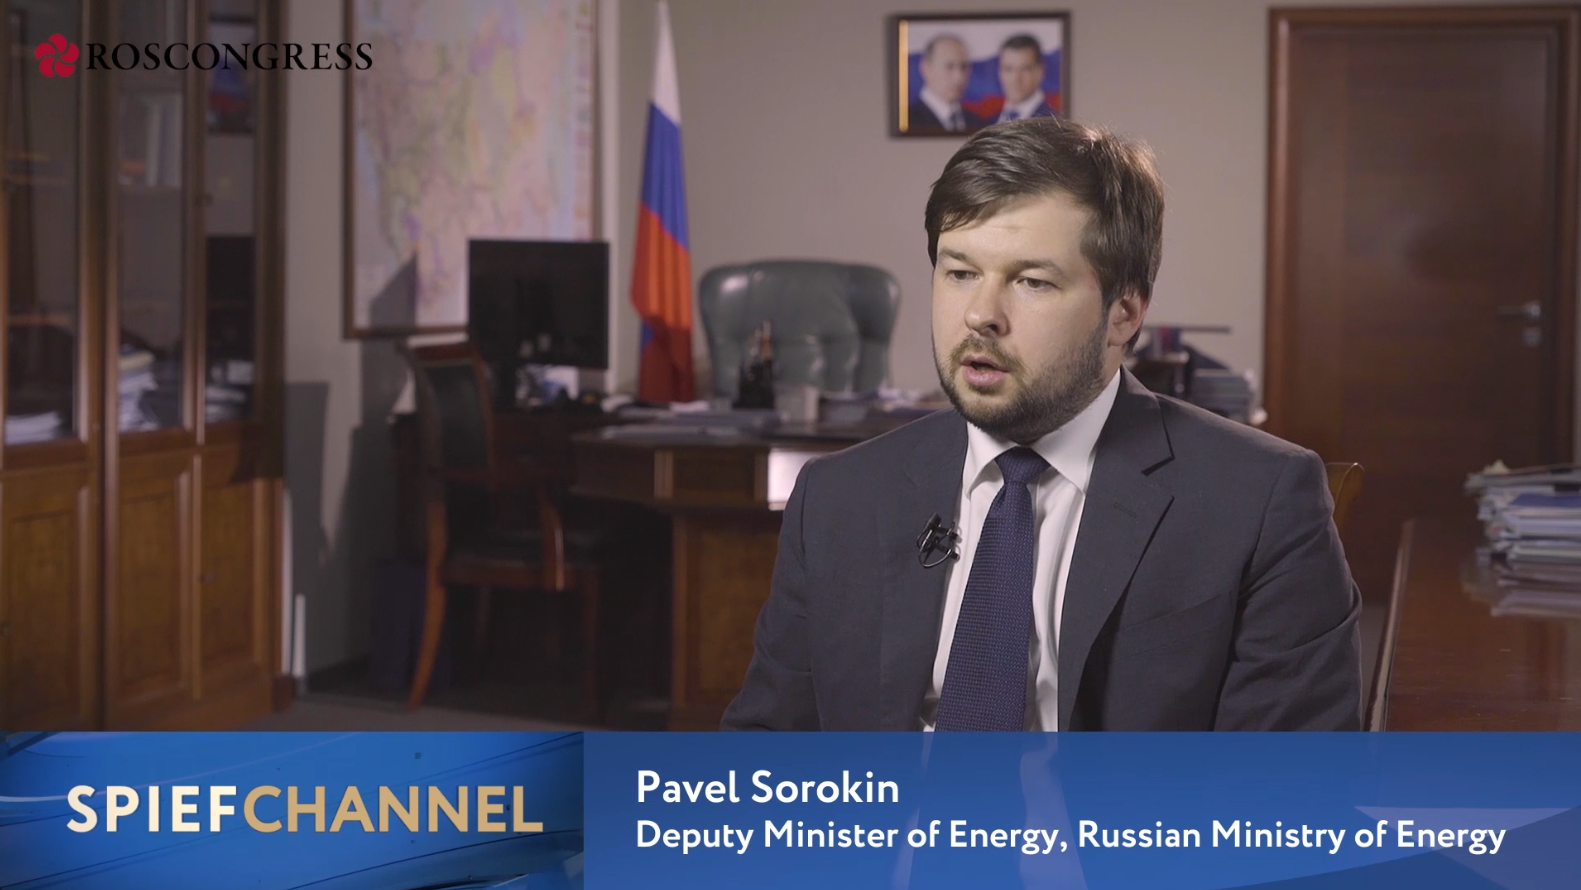 Pavel Sorokin, Deputy Minister of Energy of the Russian Federation